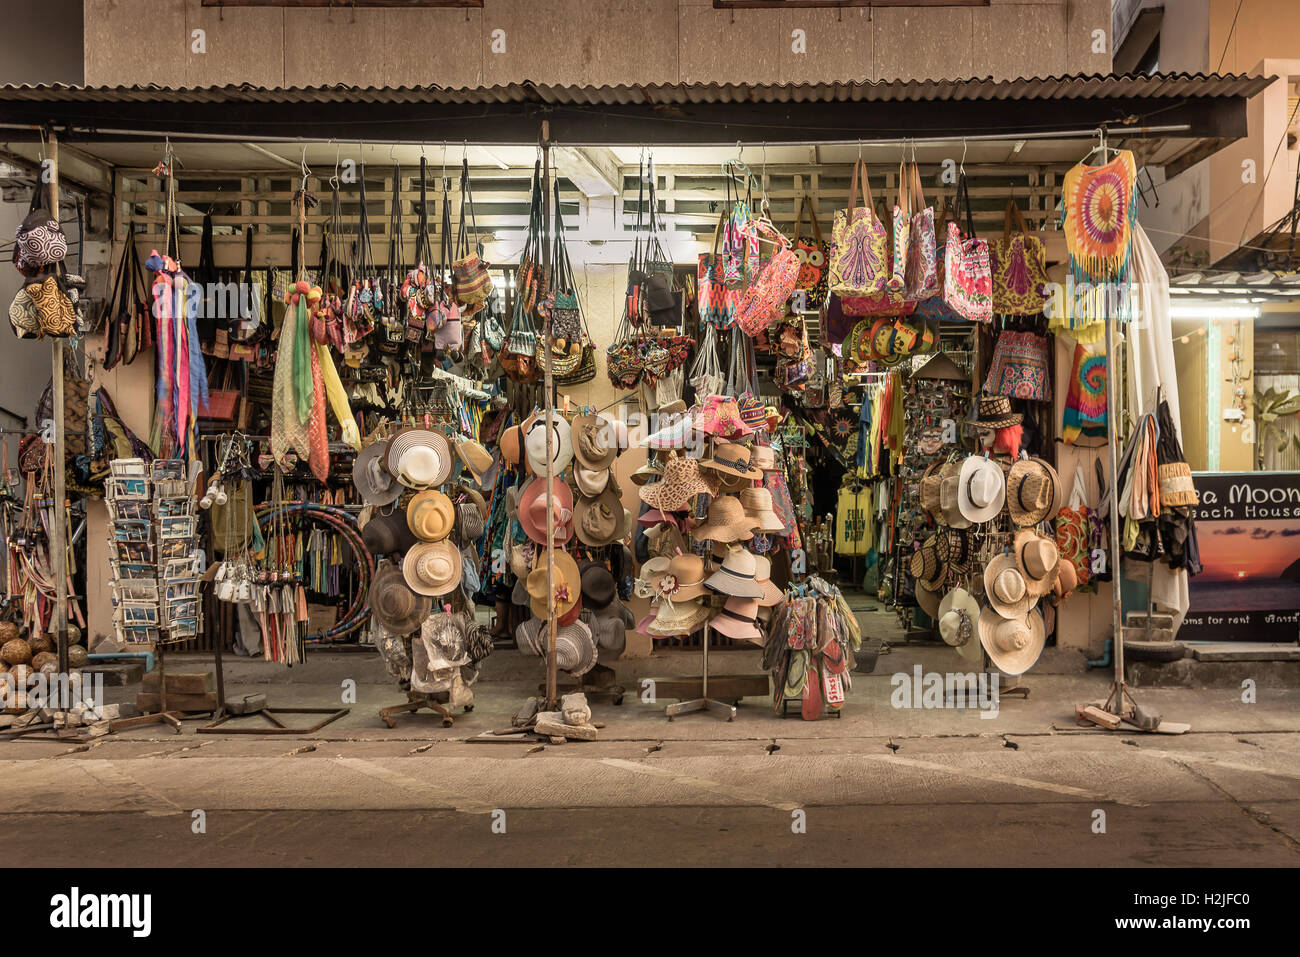 Koh Pangan Thailand. Aprol, 2016, Boutique with lots of hats on the nightmarket i Tongsala, Thailand - Stock Image